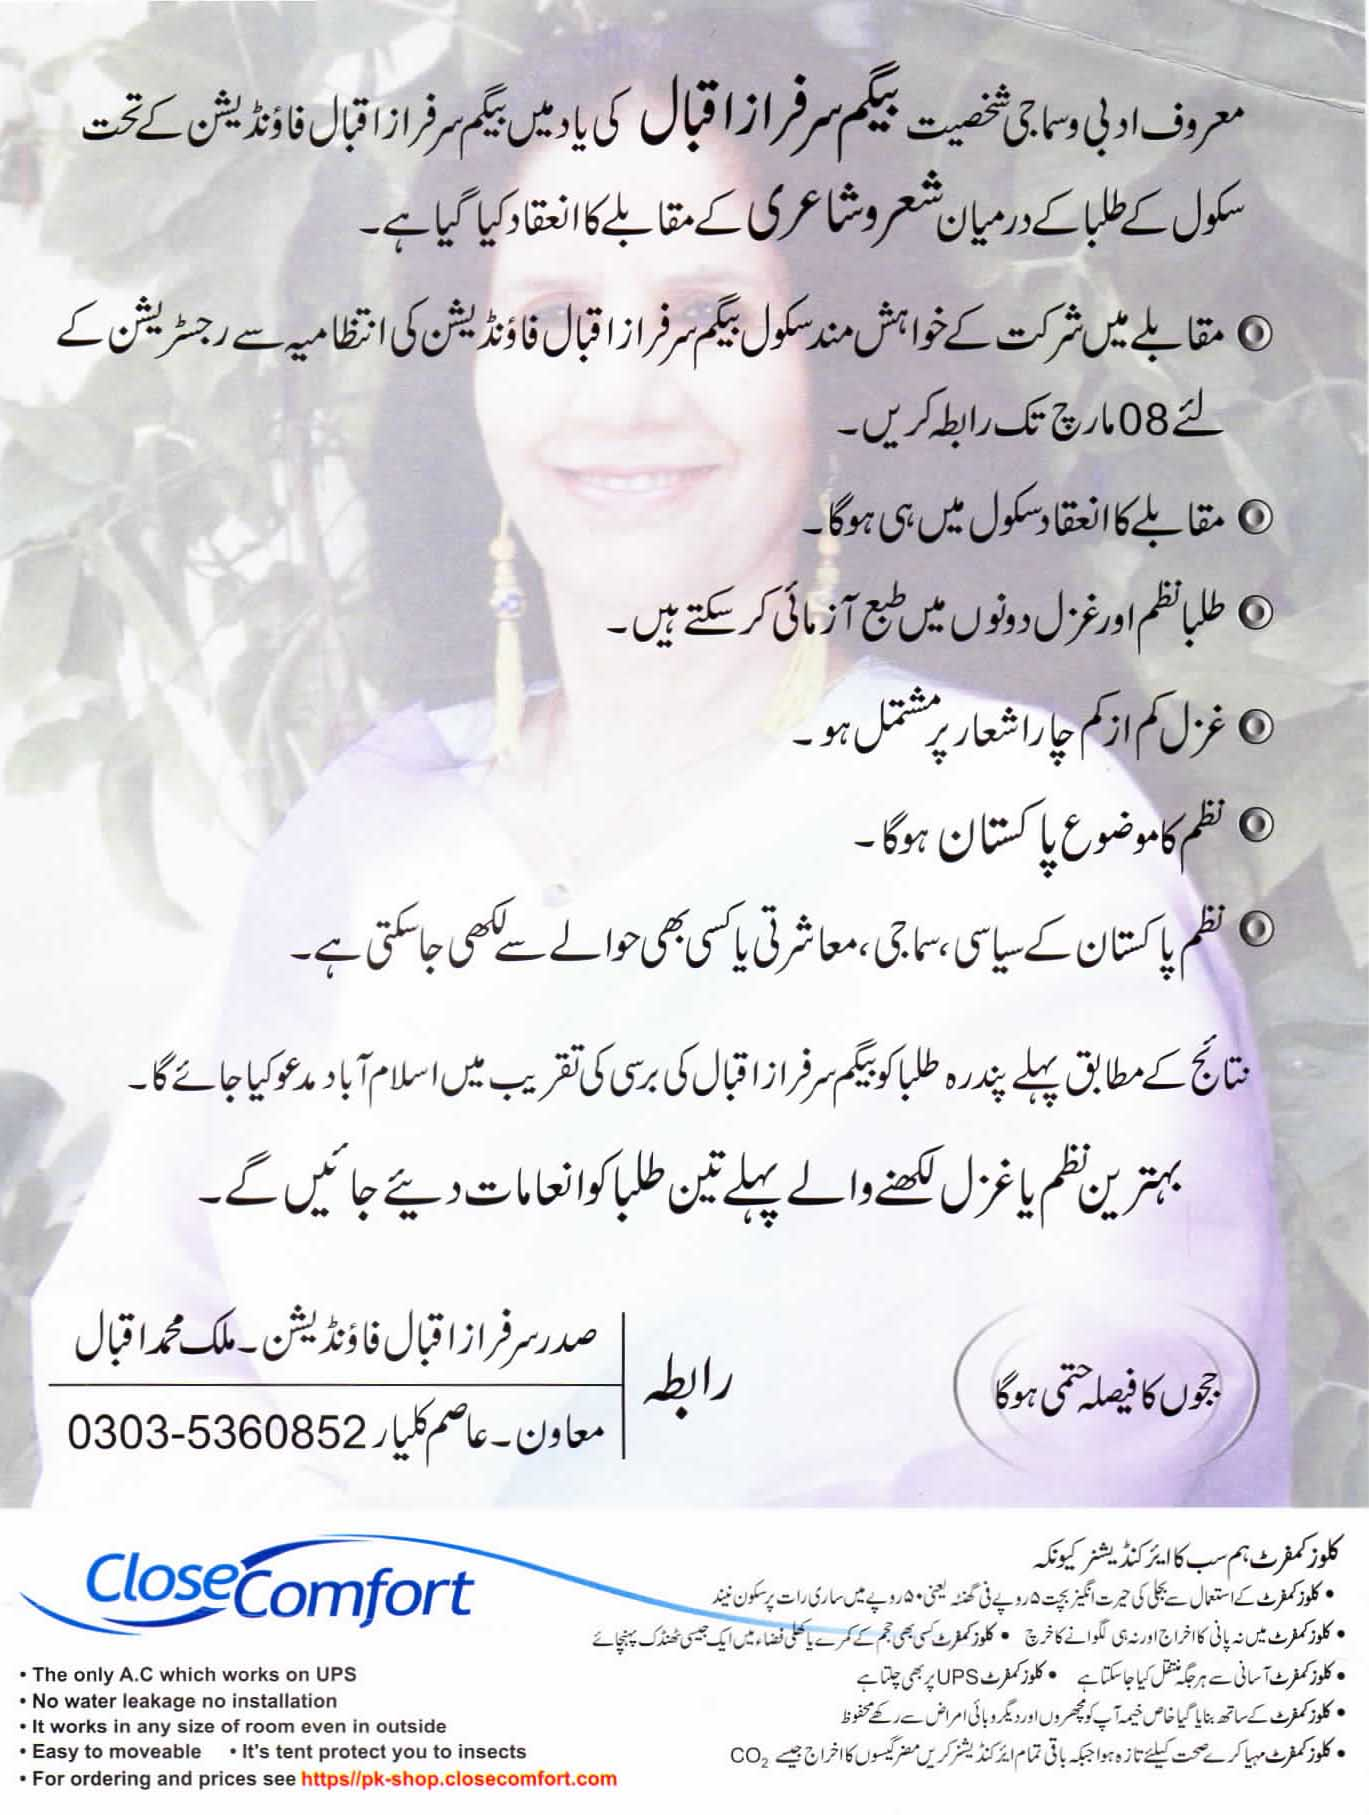 Urdu Poetry and Literature Competition Flyer